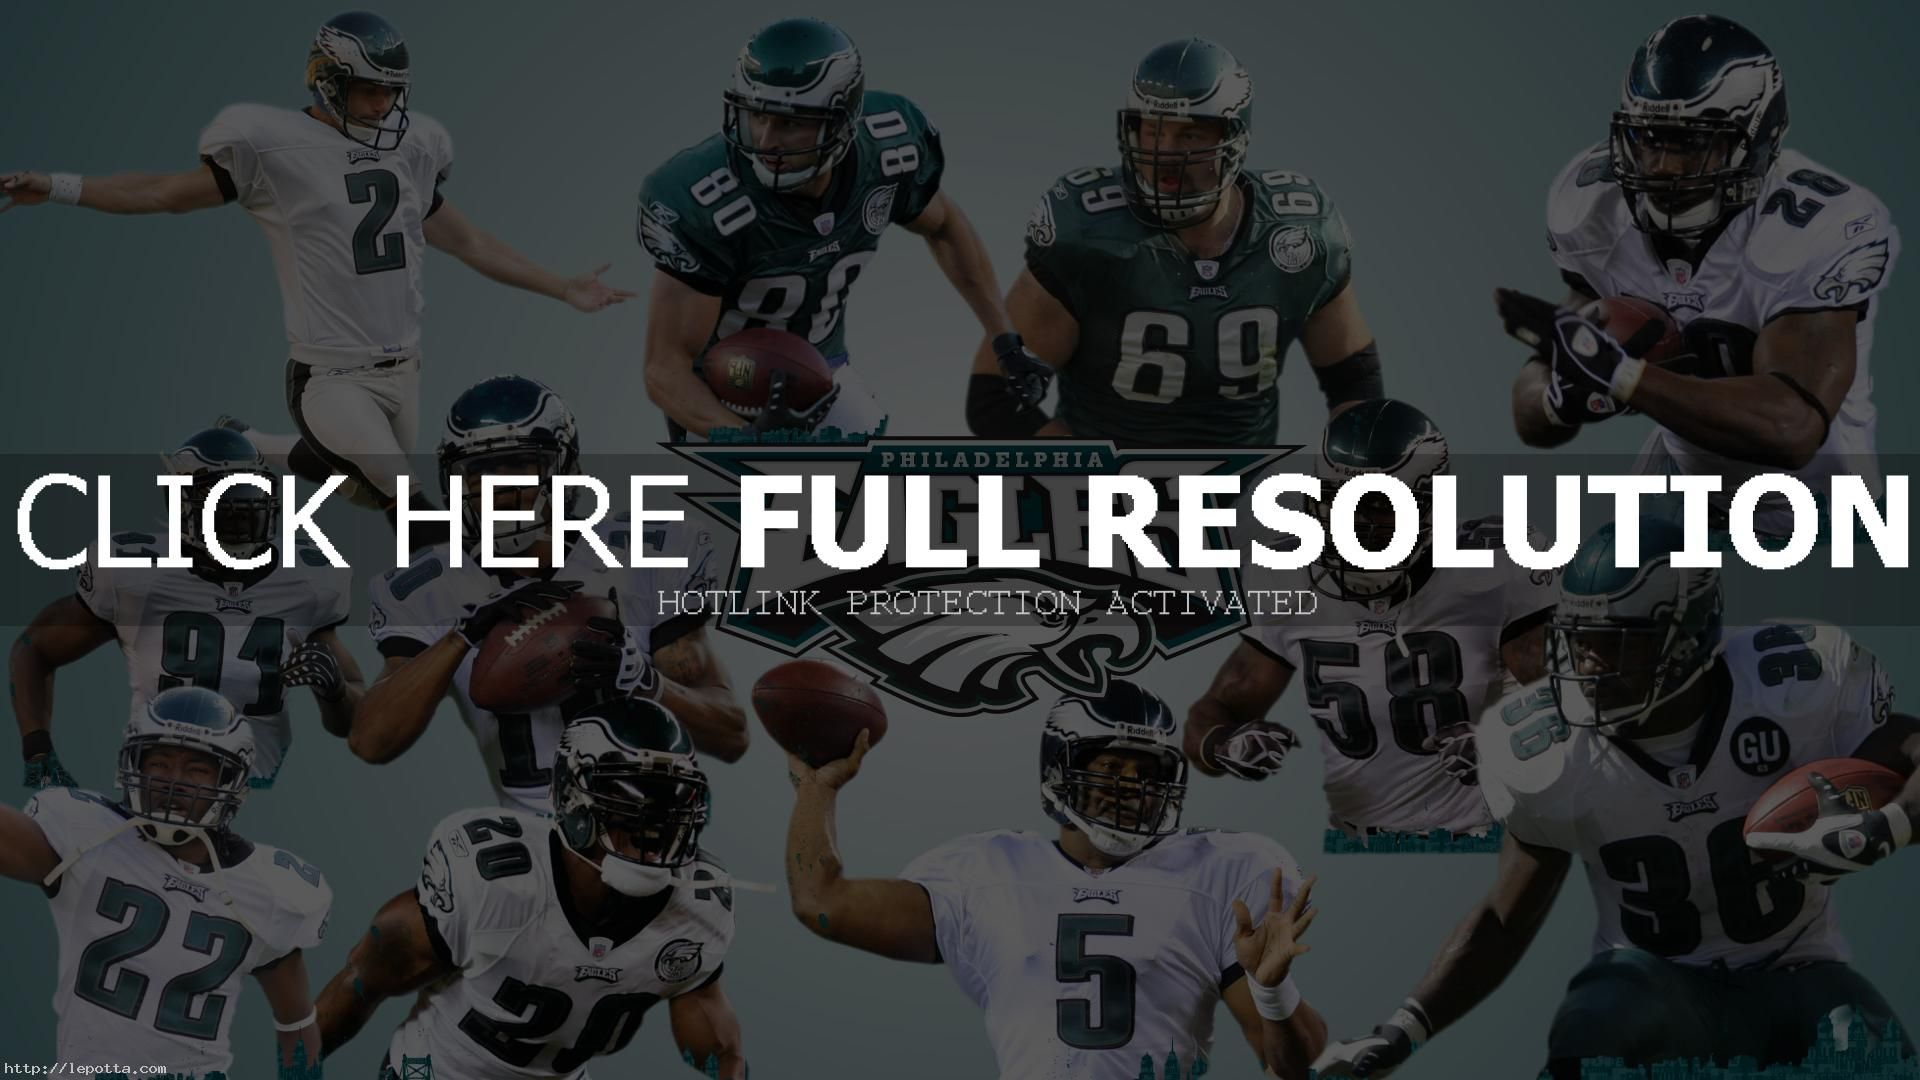 philadelphia eagles | philadelphia eagles wallpaper hd